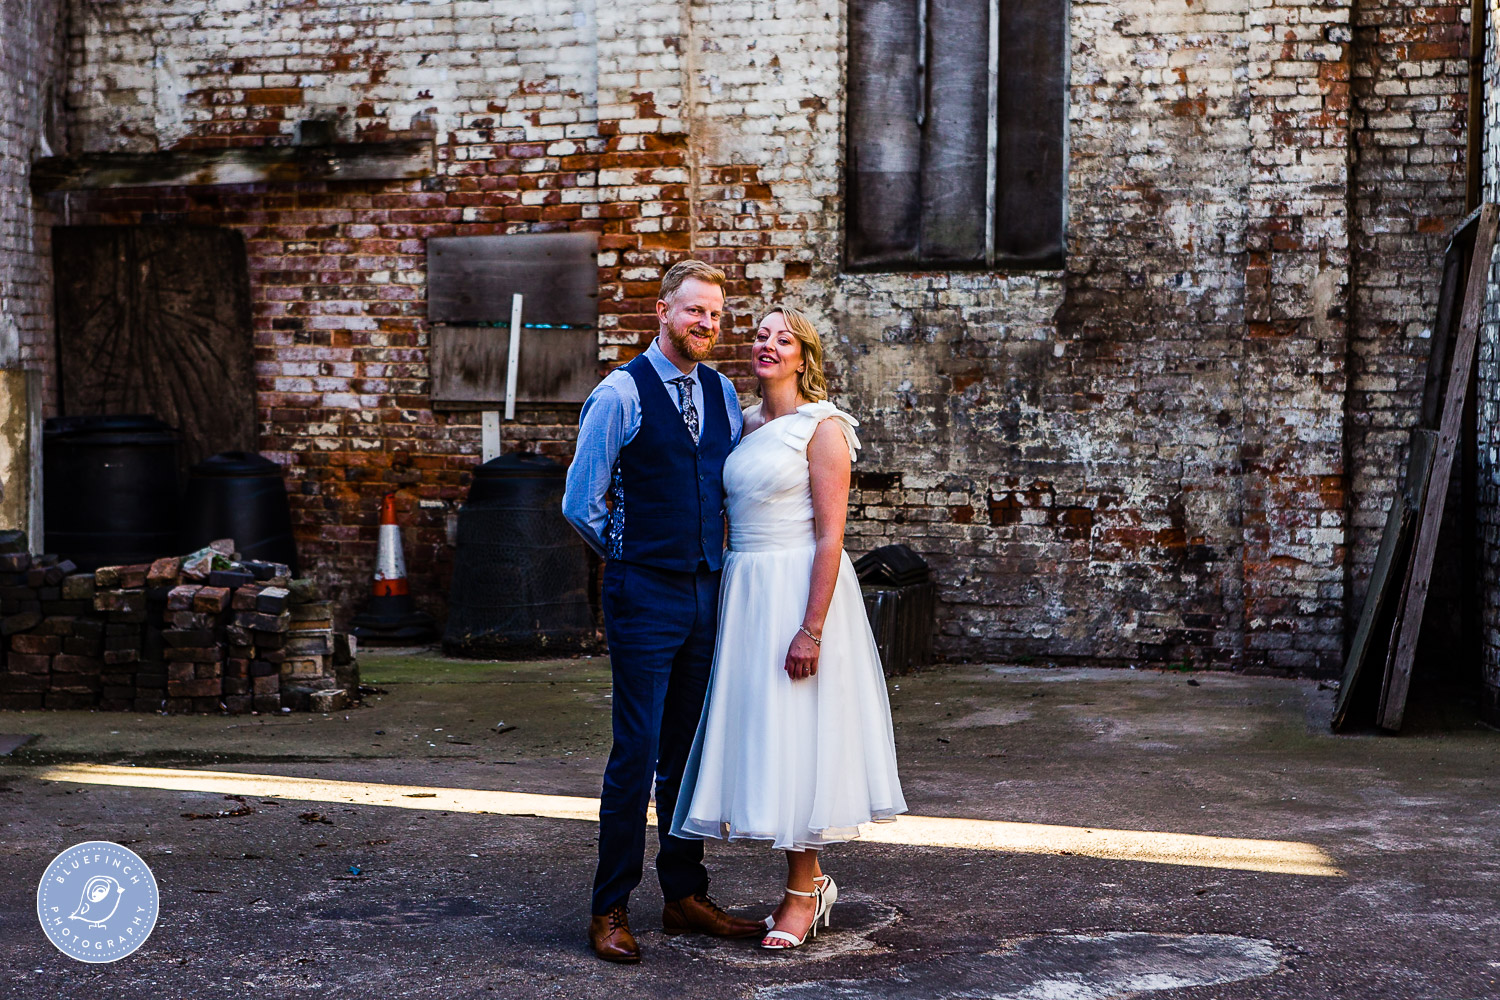 Chris & Jude's Wedding Photography At The Bond Digbeth